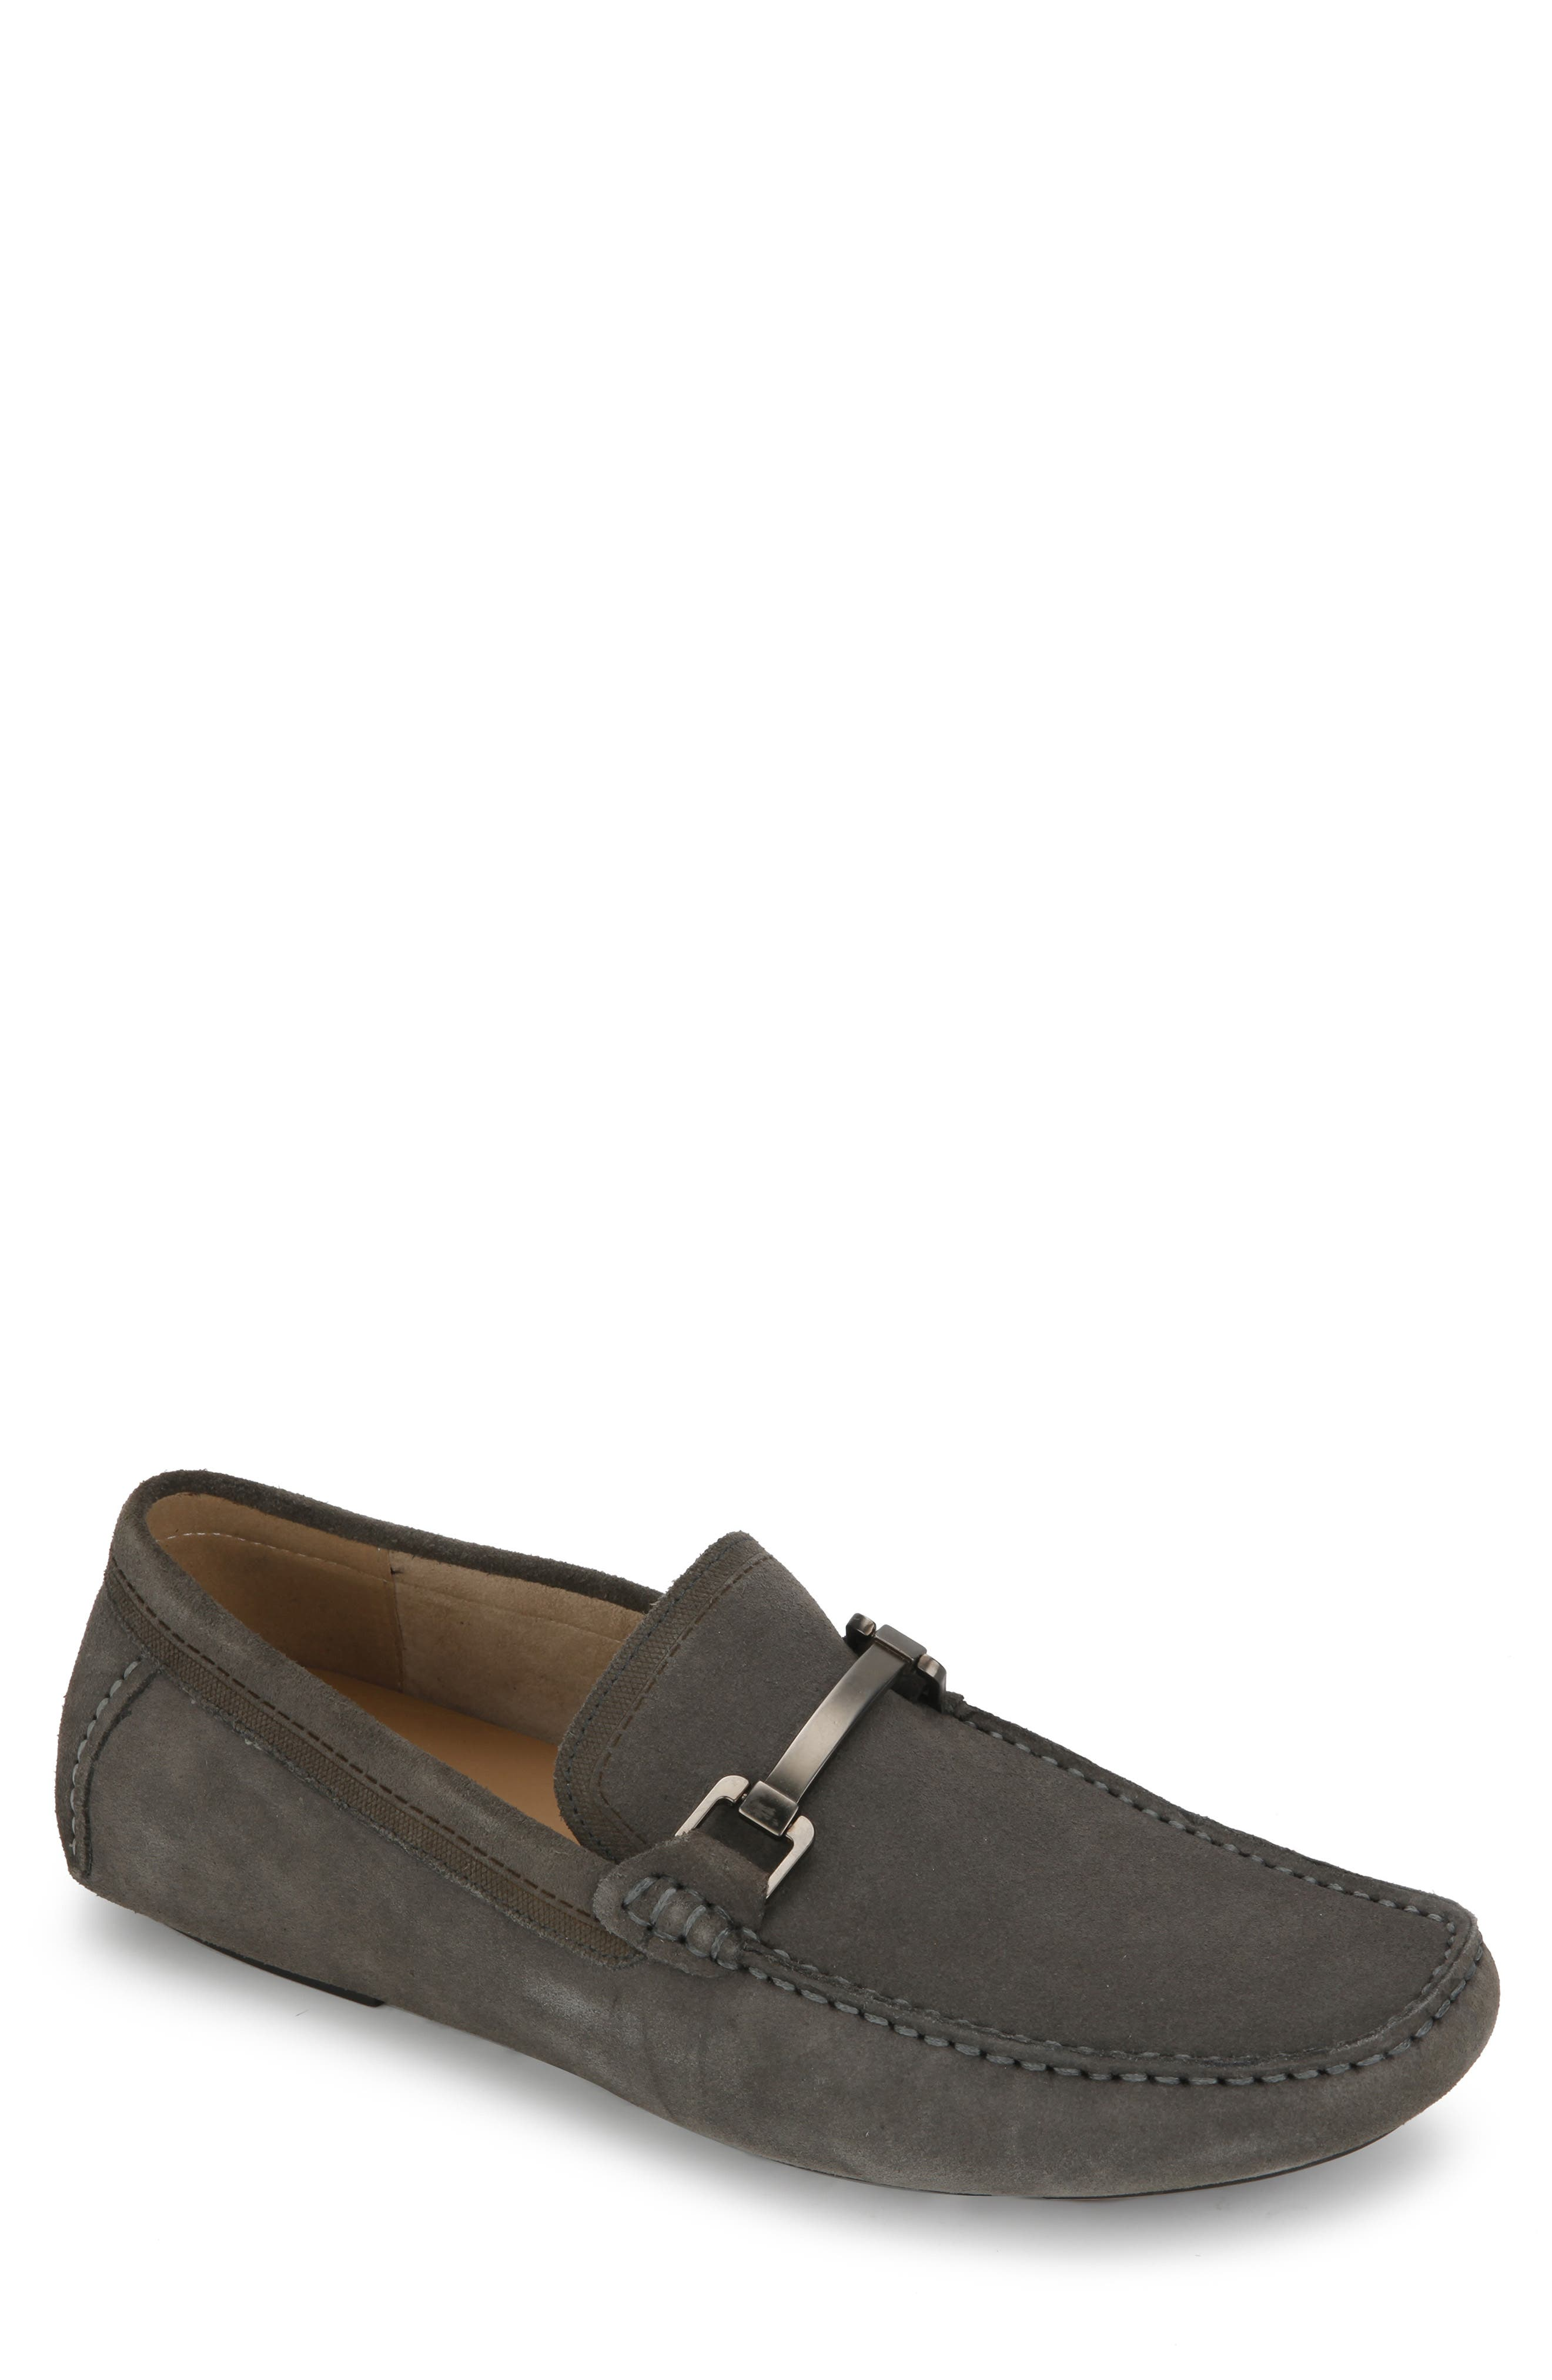 REACTION KENNETH COLE, Sound Driving Shoe, Main thumbnail 1, color, GREY